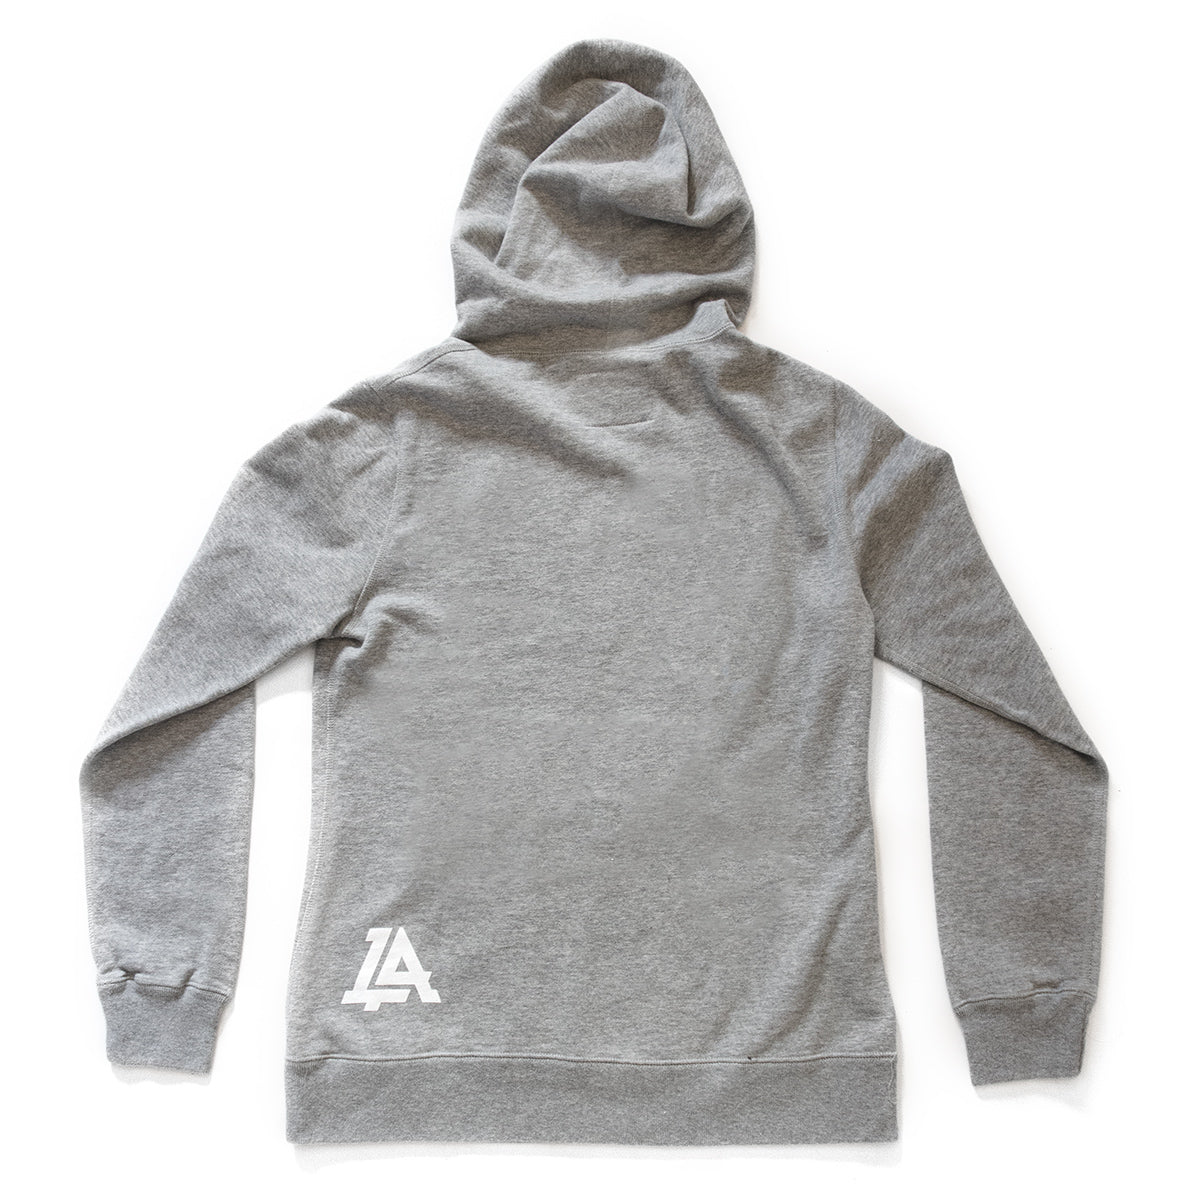 Lost Art Canada - grey icon womens hoodie sweatshirt back view